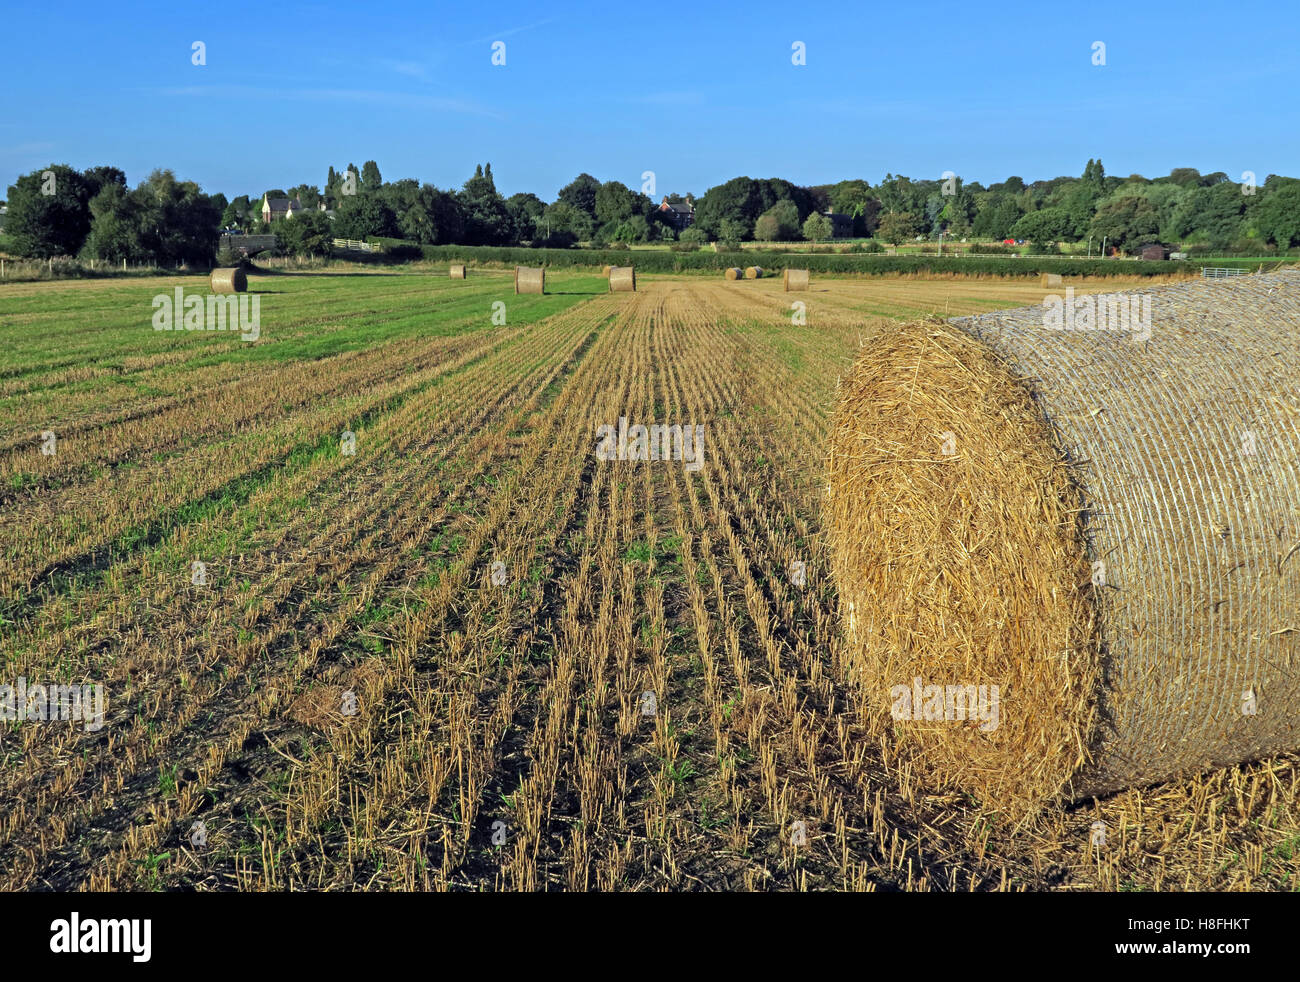 Late summer hay bales in a field, Moore, Warrington, Cheshire, England, UK - Stock Image